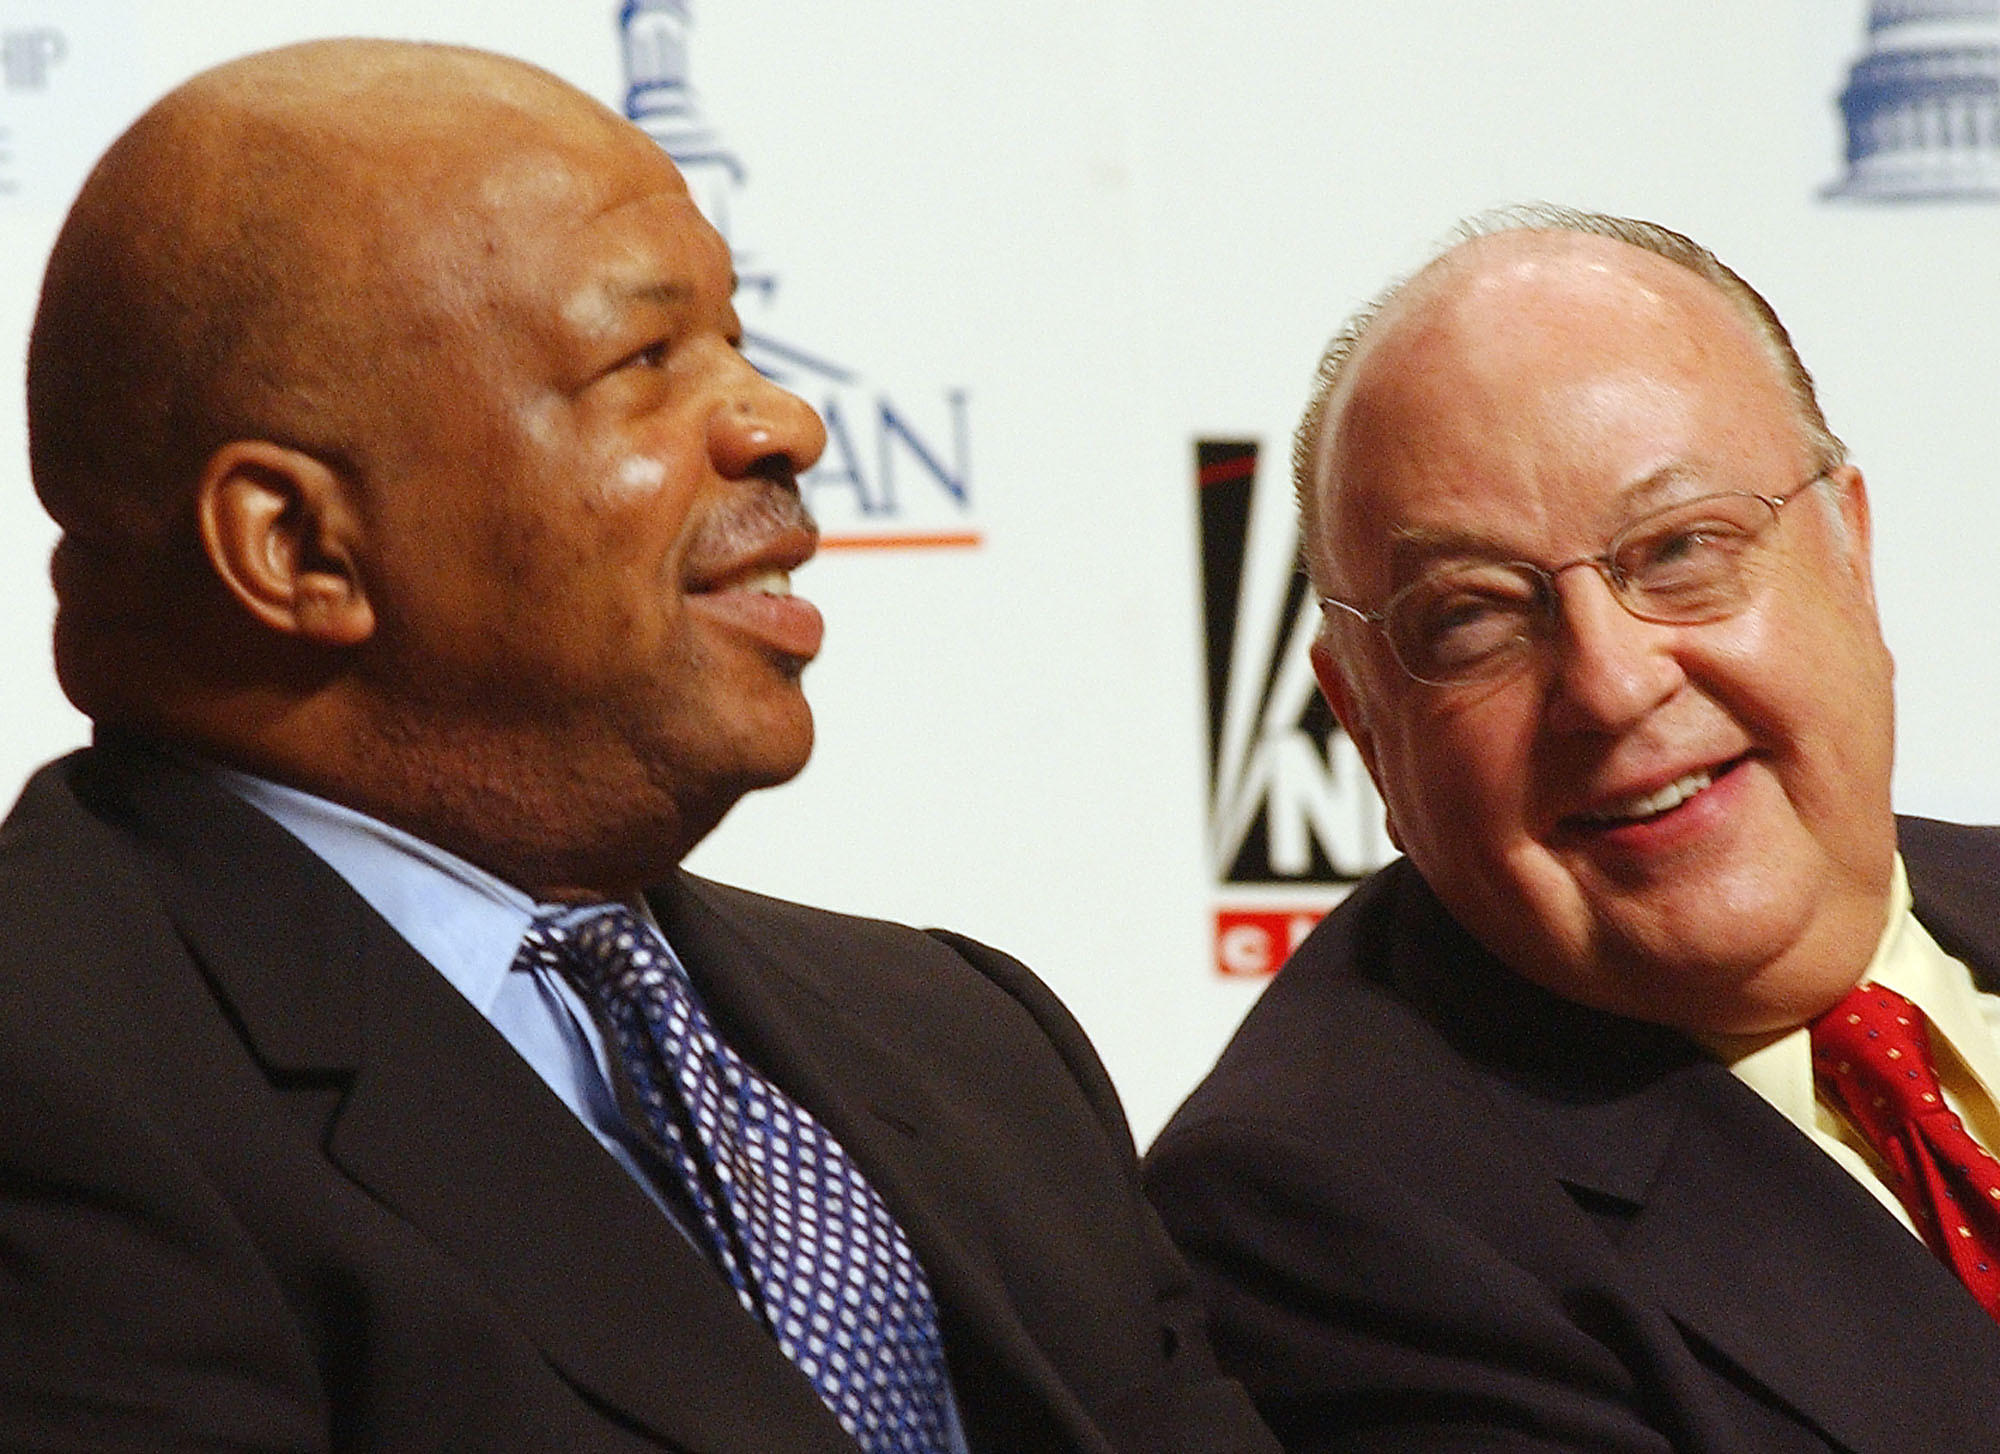 Chairman and CEO of Fox News Channel Roger Ailes, right, smiles at Rep. Elijah E. Cummings, D-Md., during a news conference at Morgan State University, in Baltimore, Thursday, Aug. 7, 2003, where they announced that the Congressional Black Caucus will partner with Fox news to host two presidential debates.